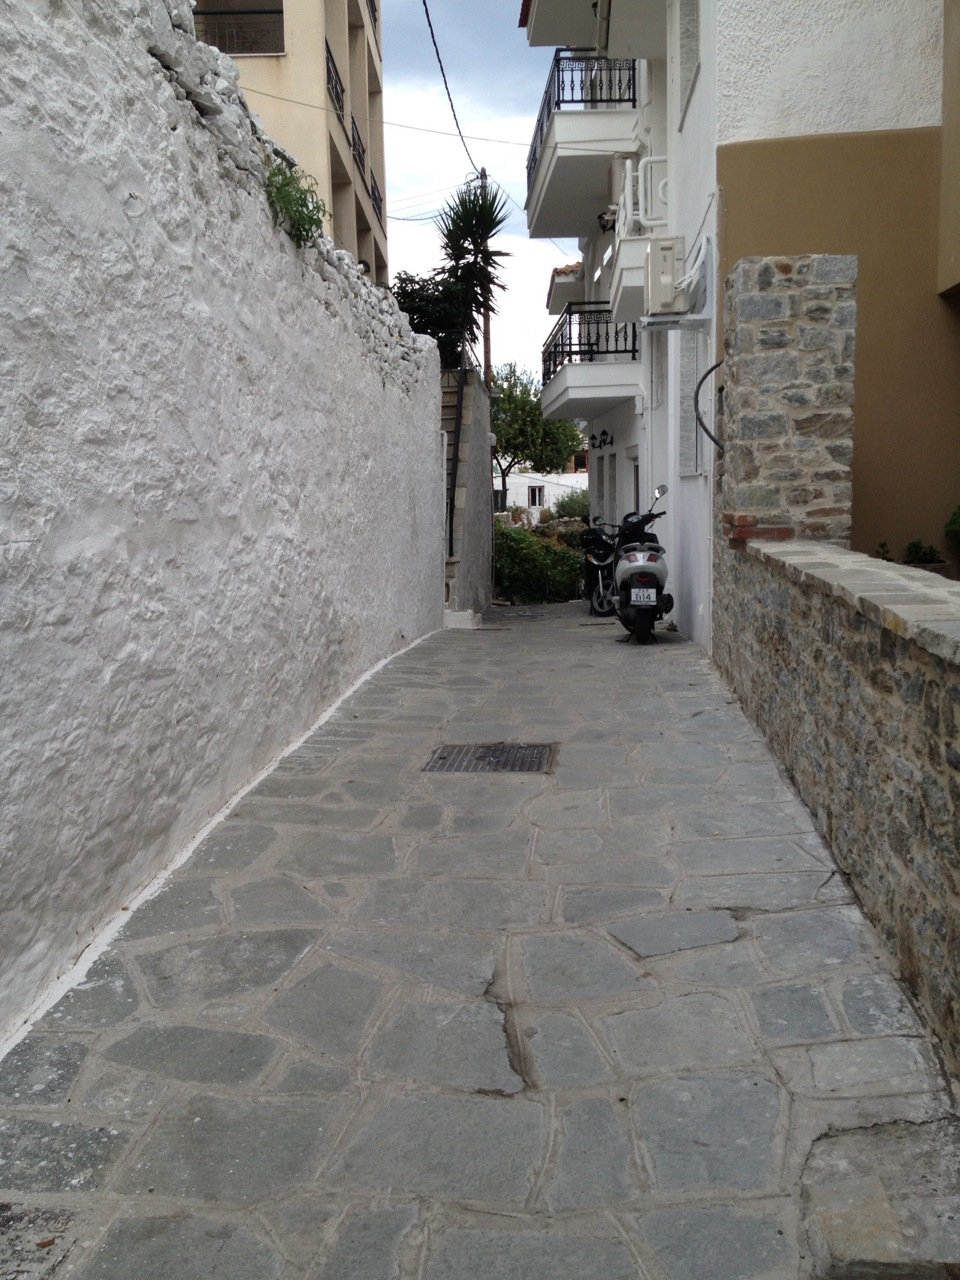 Scooter is the best mode of transportation on these tricky streets